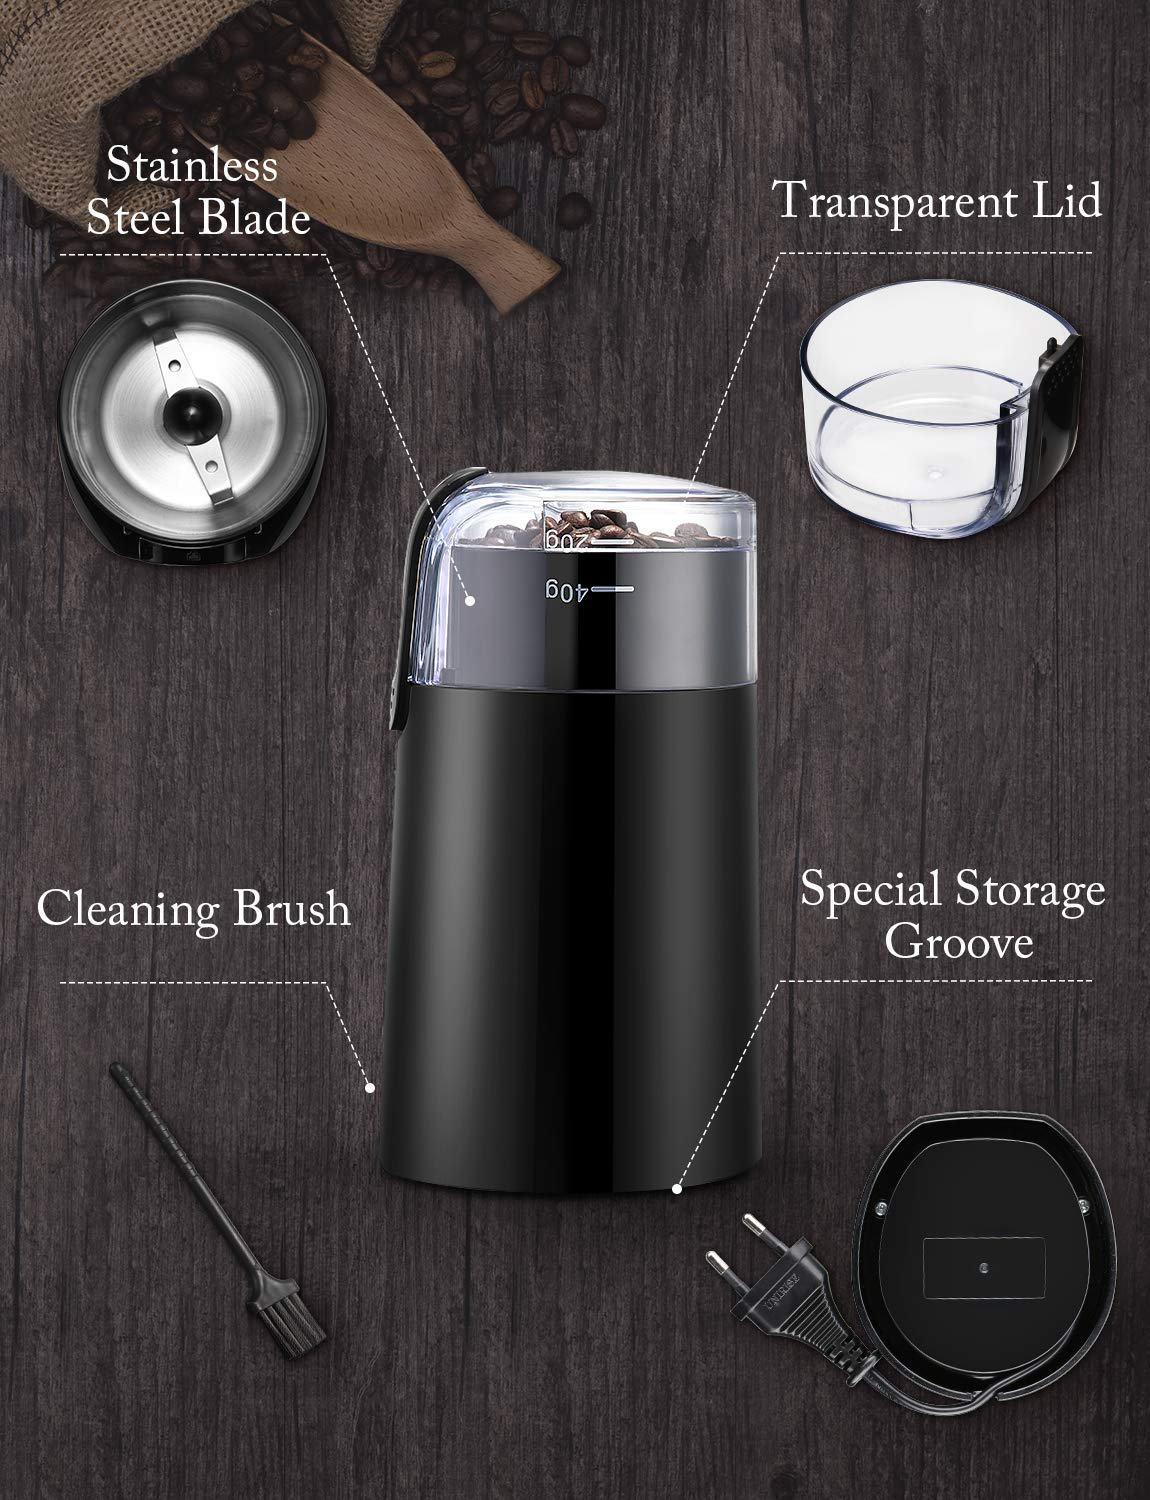 Electric Coffee Grinder, Ikich Coffee Bean Grinder Electric Mill Spice Grinder, Stainless Steel Blade, 60g Capacity, Cord Storage, Portable & Compact for Spices, Pepper, Herbs, Nuts, Seeds, Grains